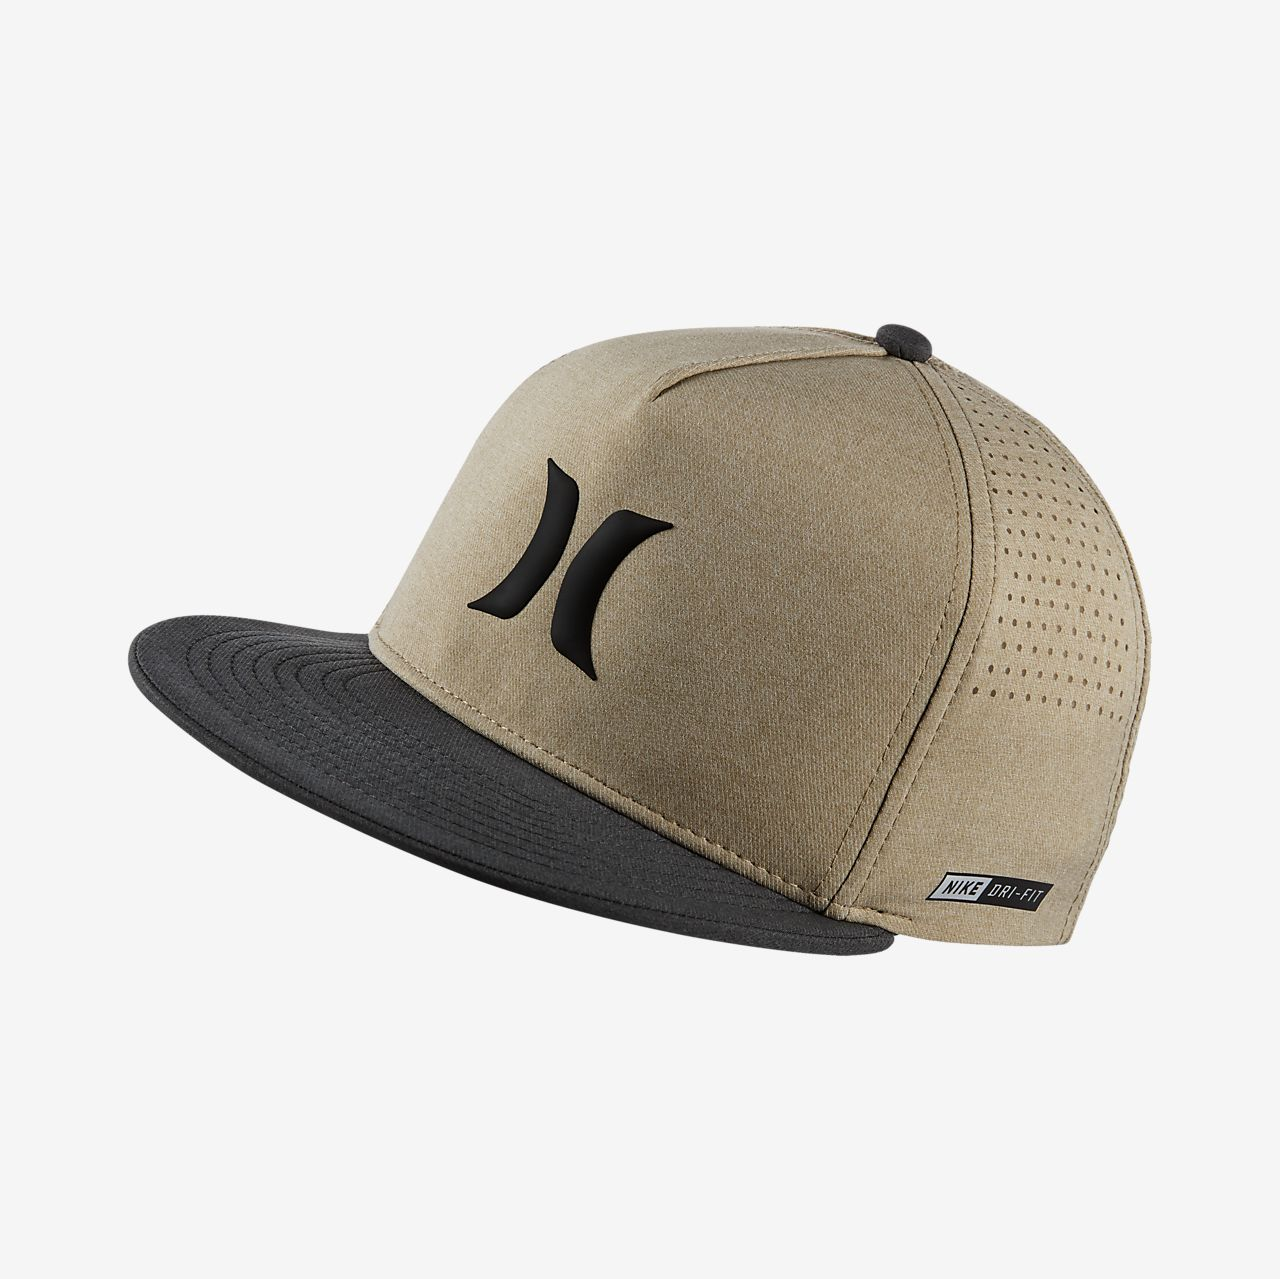 581454166da Hurley Dri-FIT Icon Men s Adjustable Hat. Nike.com ZA